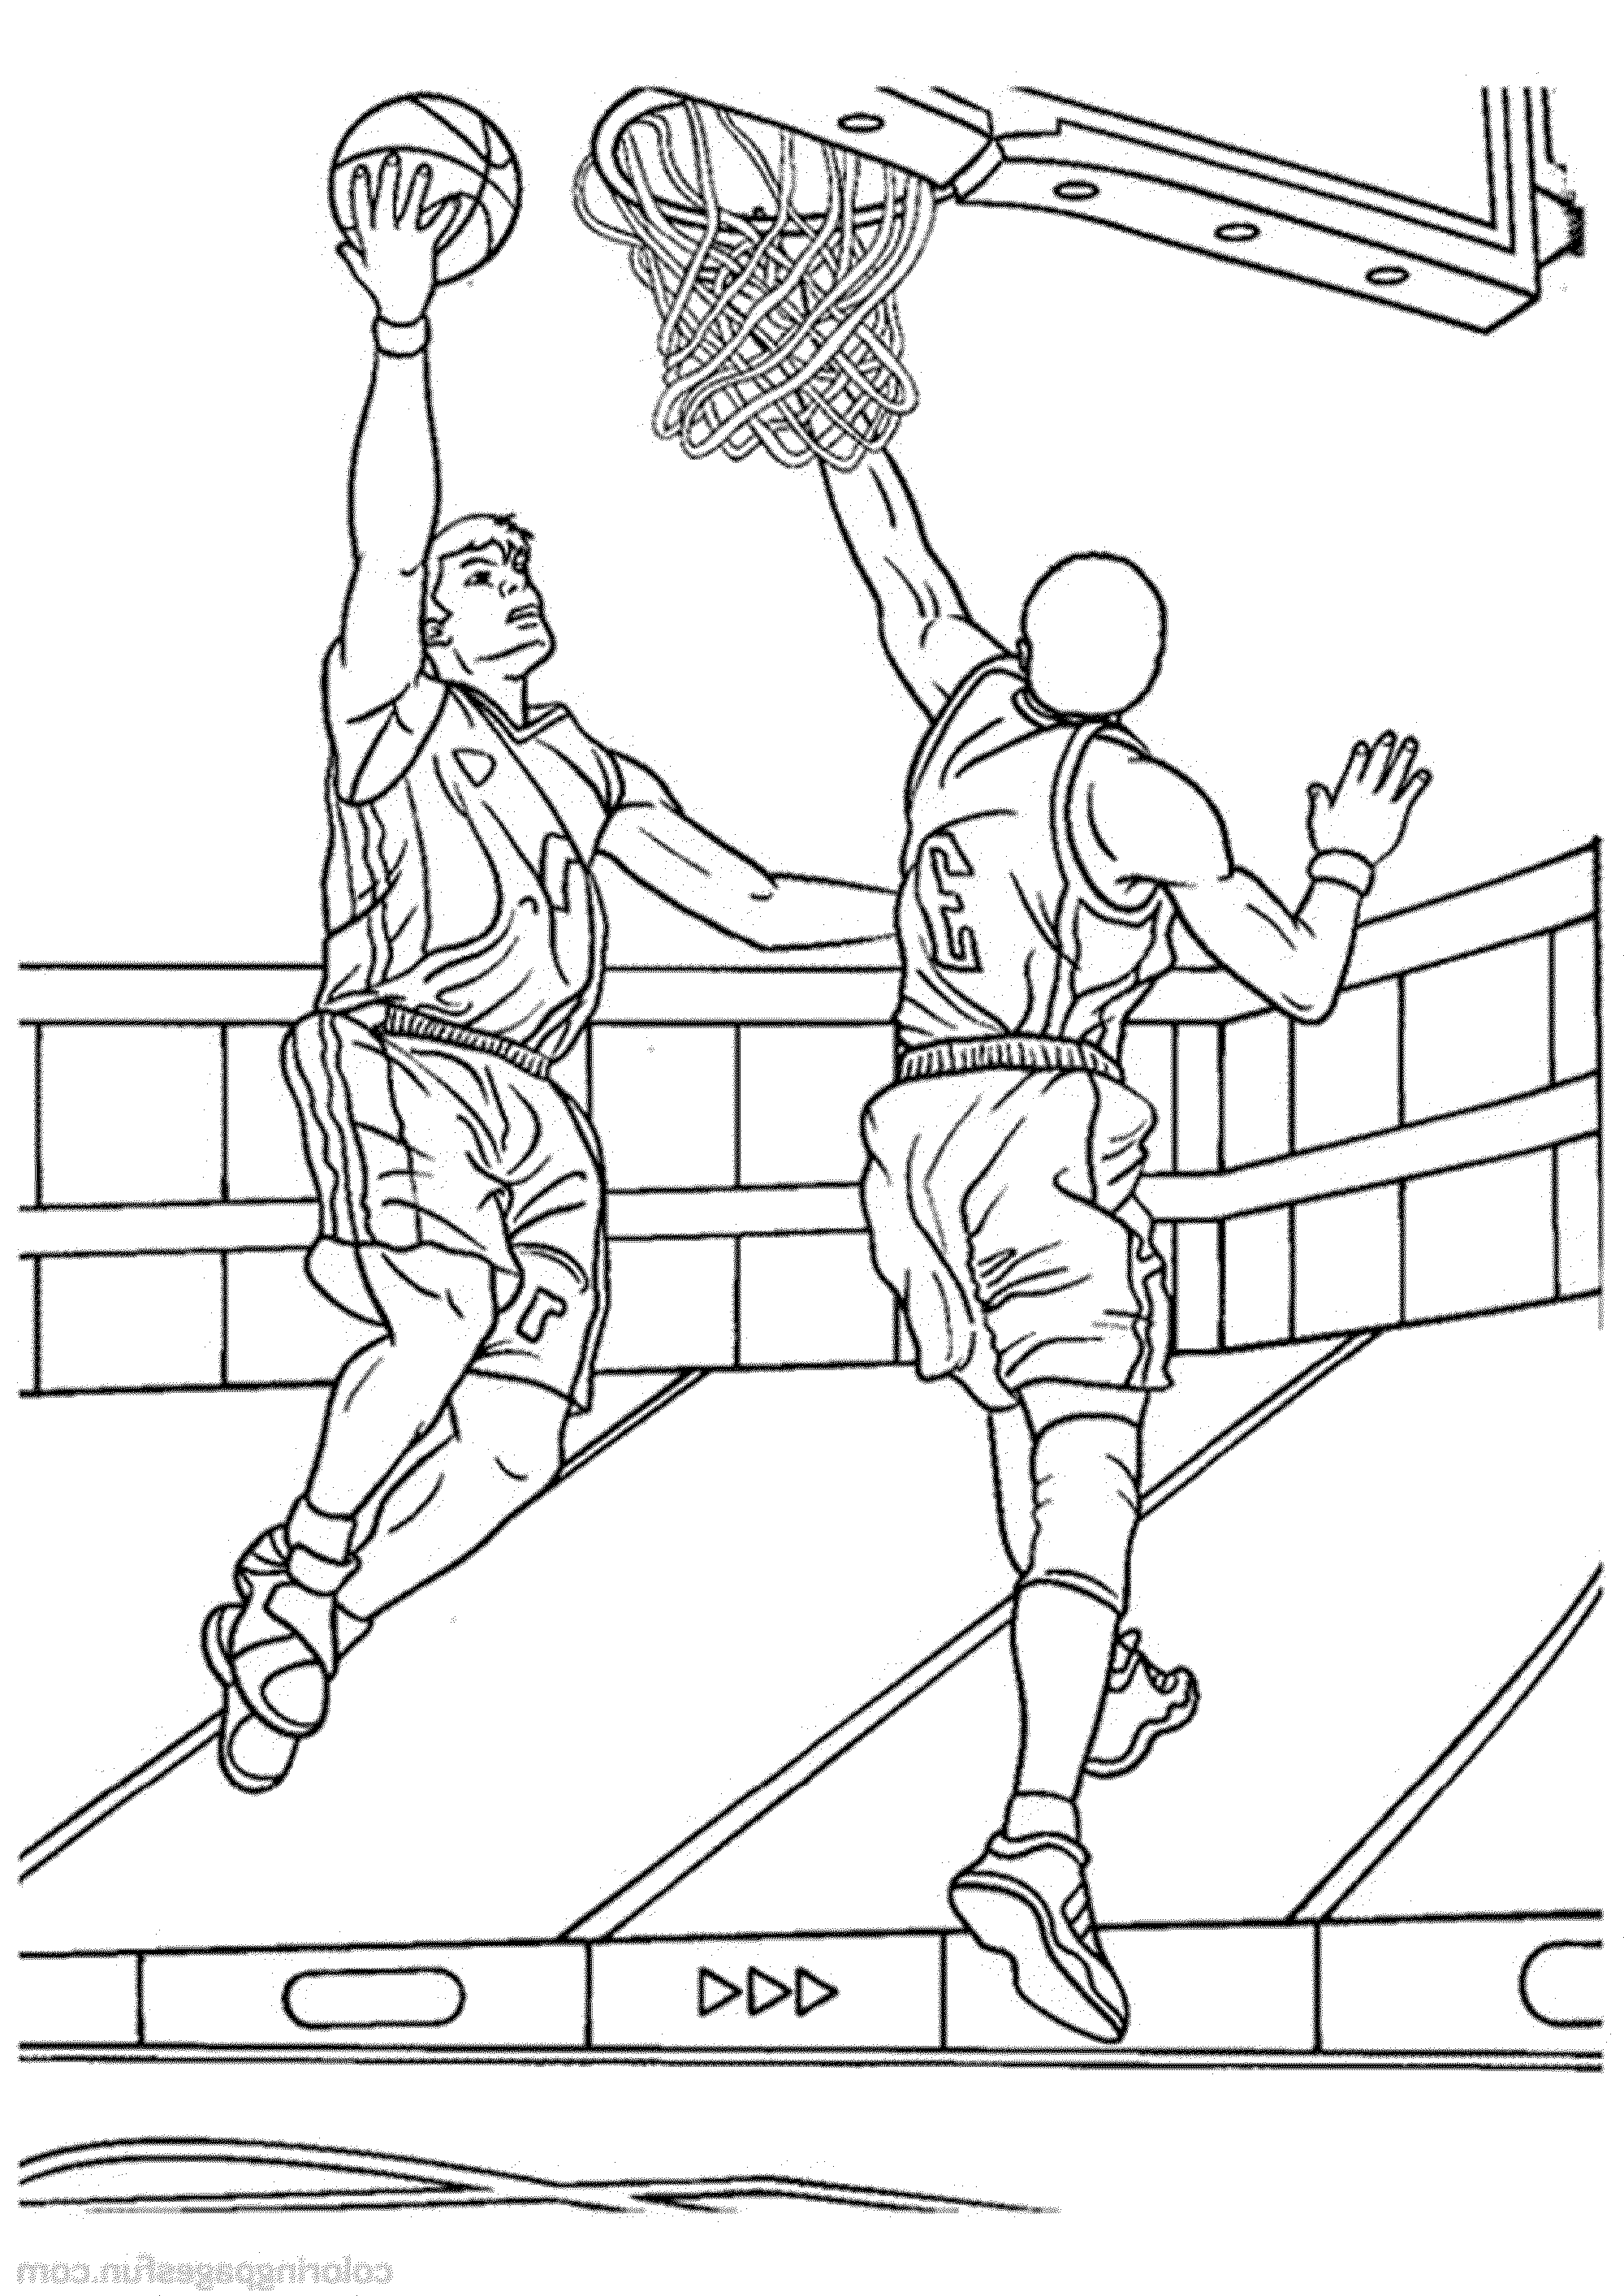 Print & Download Interesting Basketball Coloring Pages